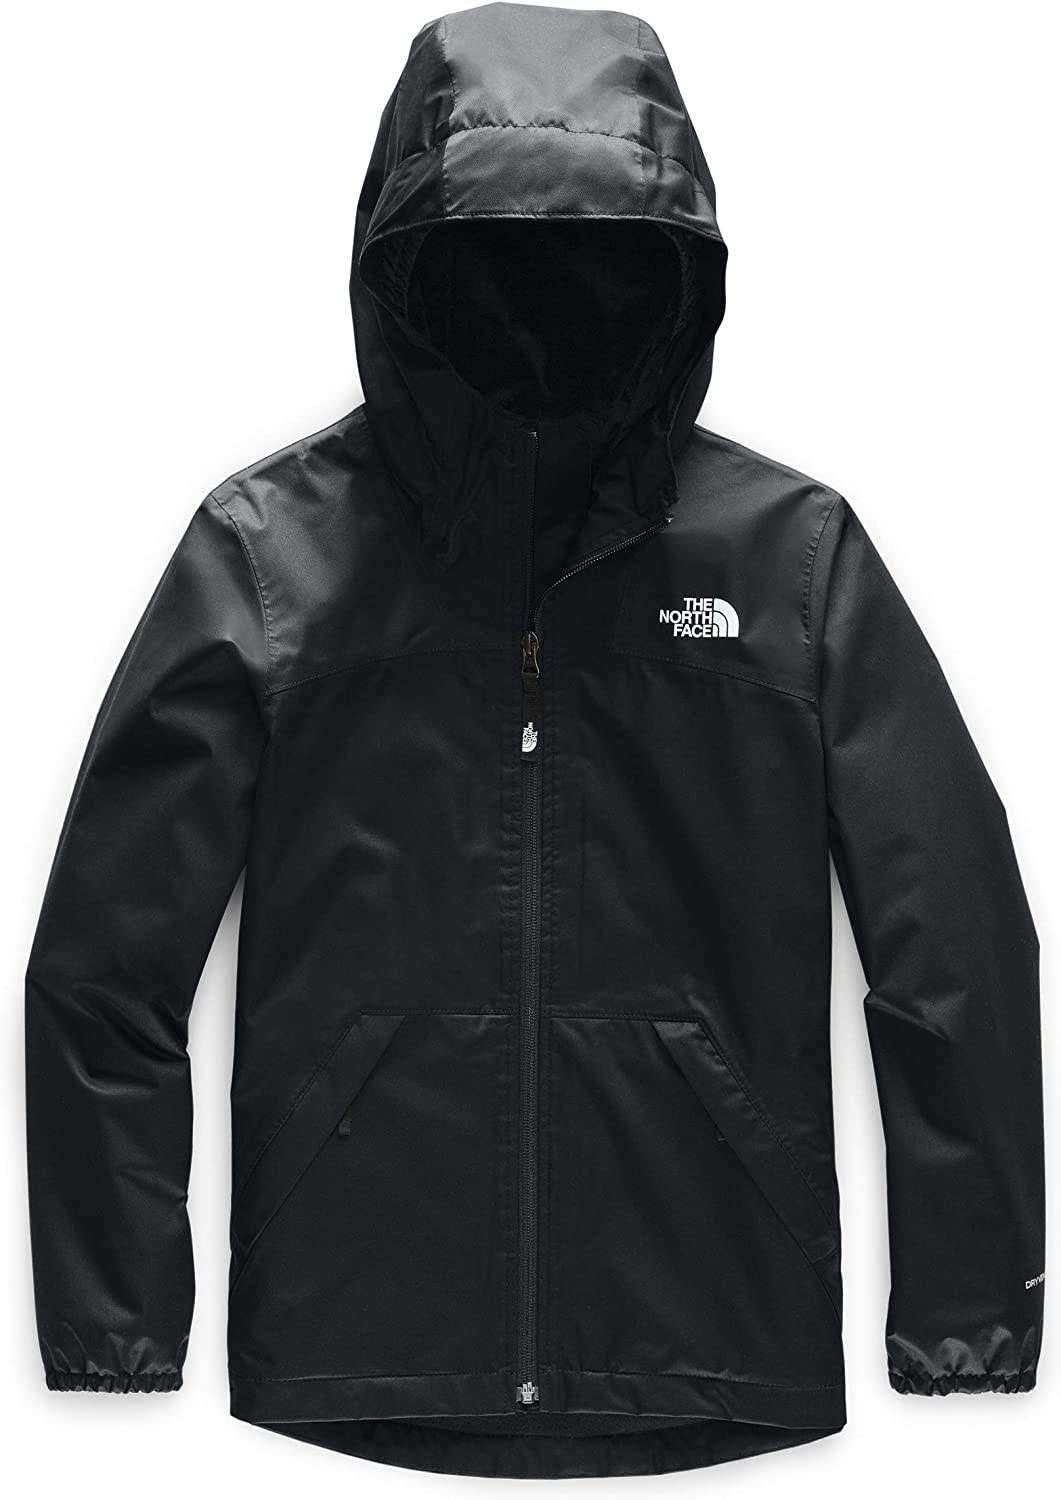 The North Face t934ux warm Storm chaqueta